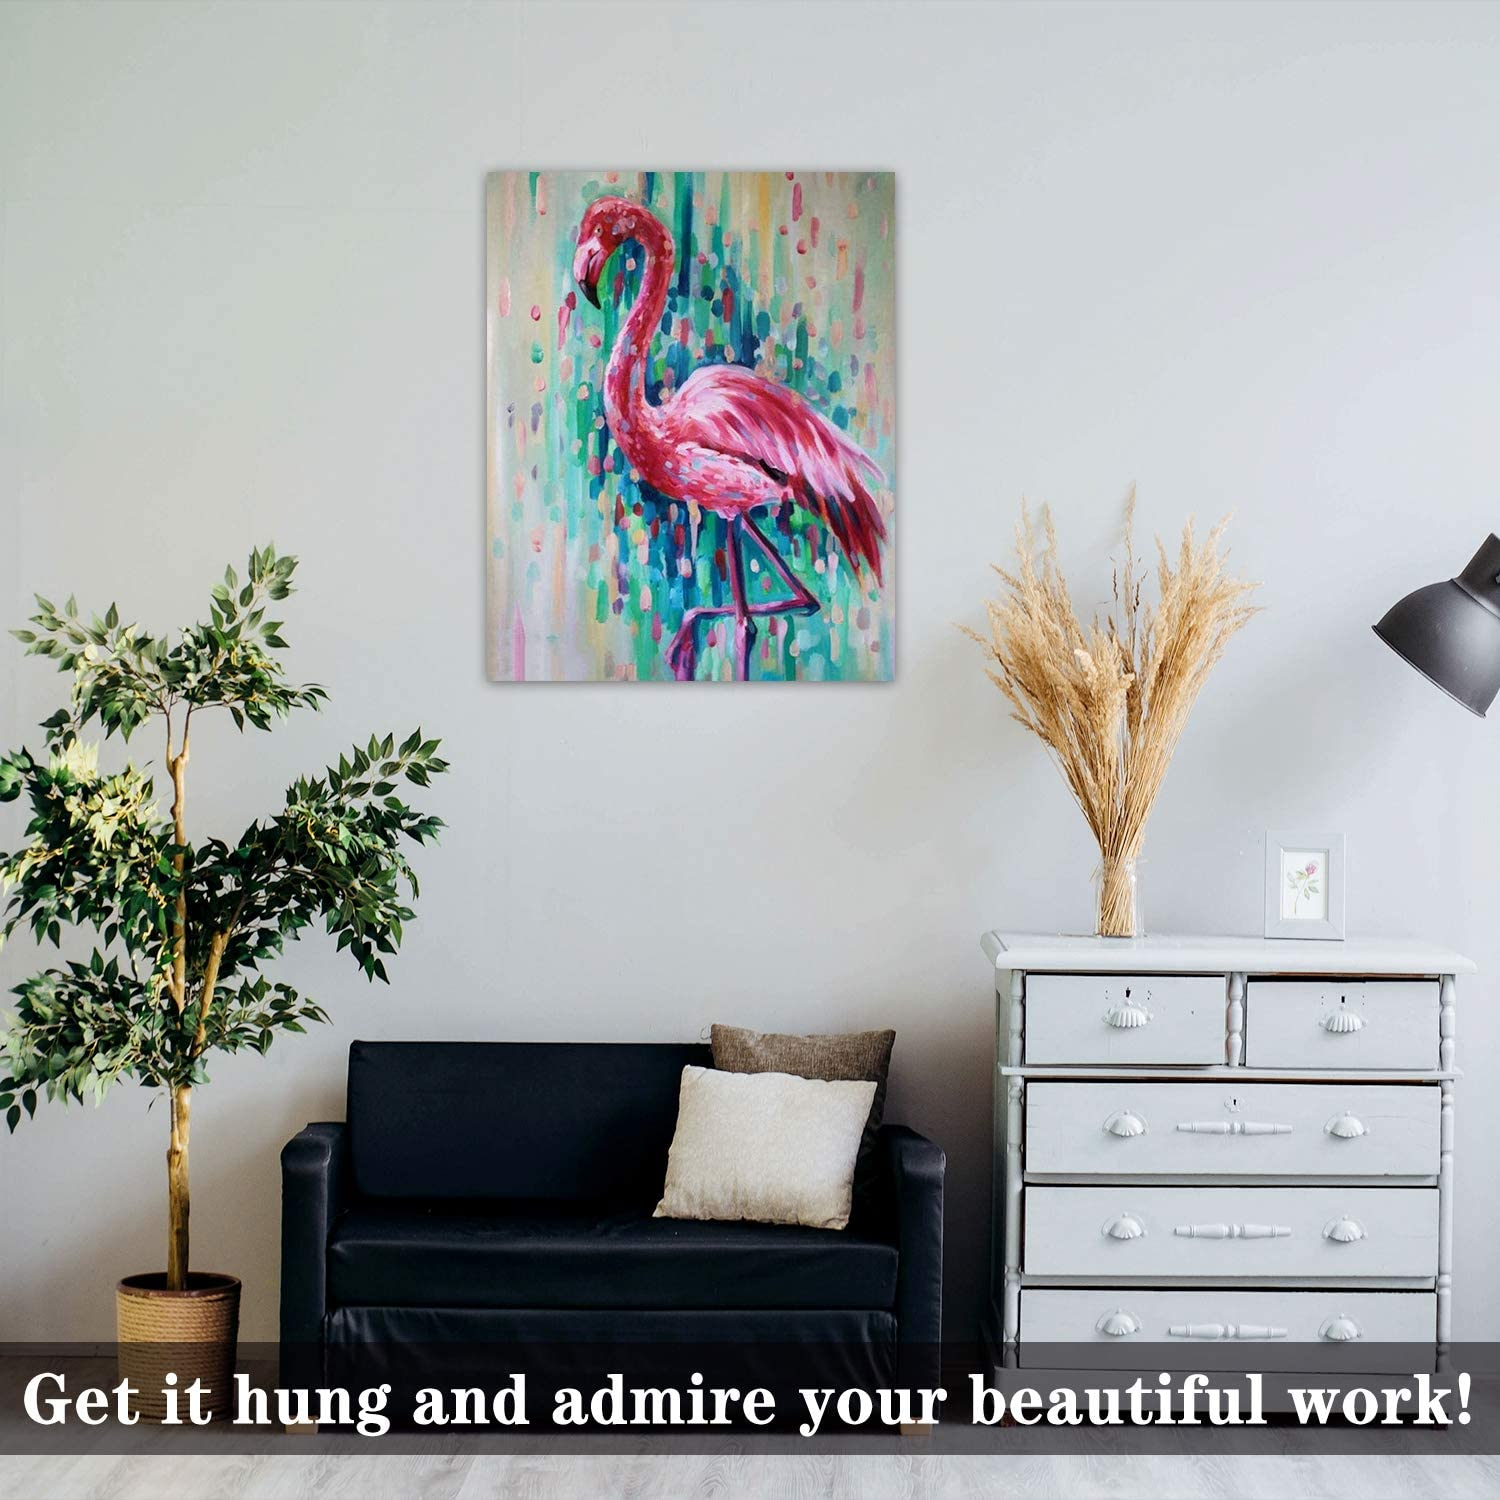 """Flamingo SENWANG Paint by Number for Adult Oil Painting Canvas Kits 16/"""" x 20/"""" Paintwork with 62 Brushes Pigments Art Crafts for Home DIY Wall Decor"""